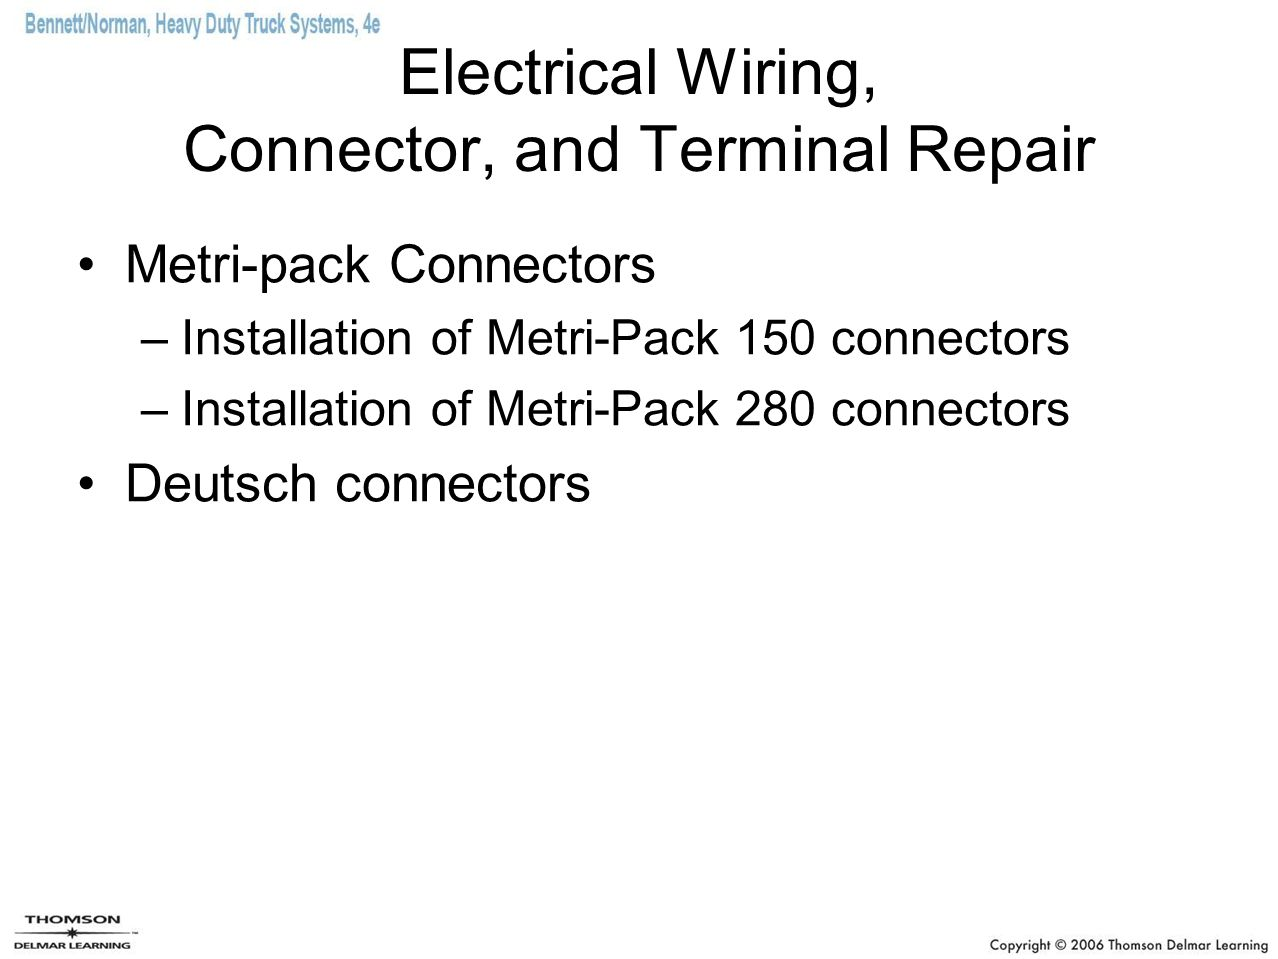 Electrical Wiring, Connector, and Terminal Repair